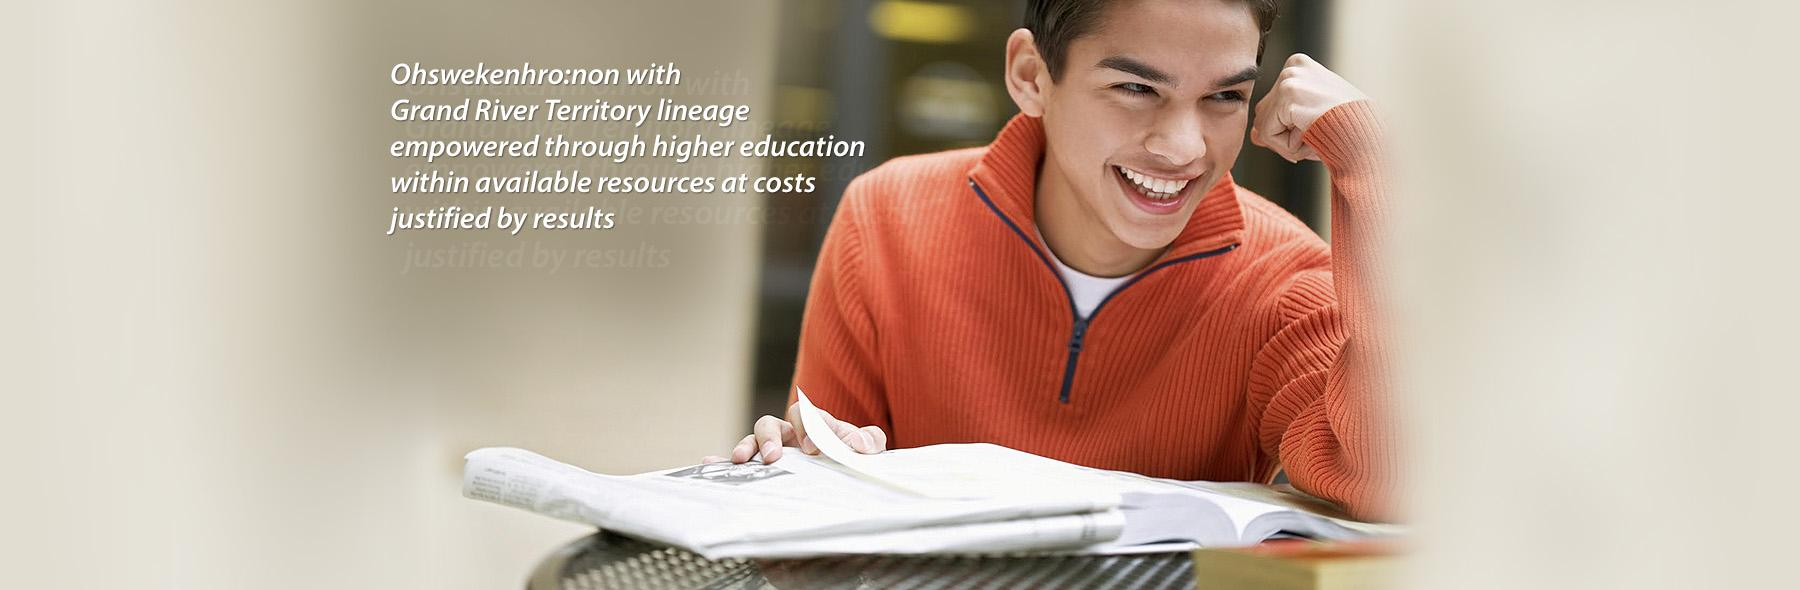 Young man smiling as he studies from a textbook